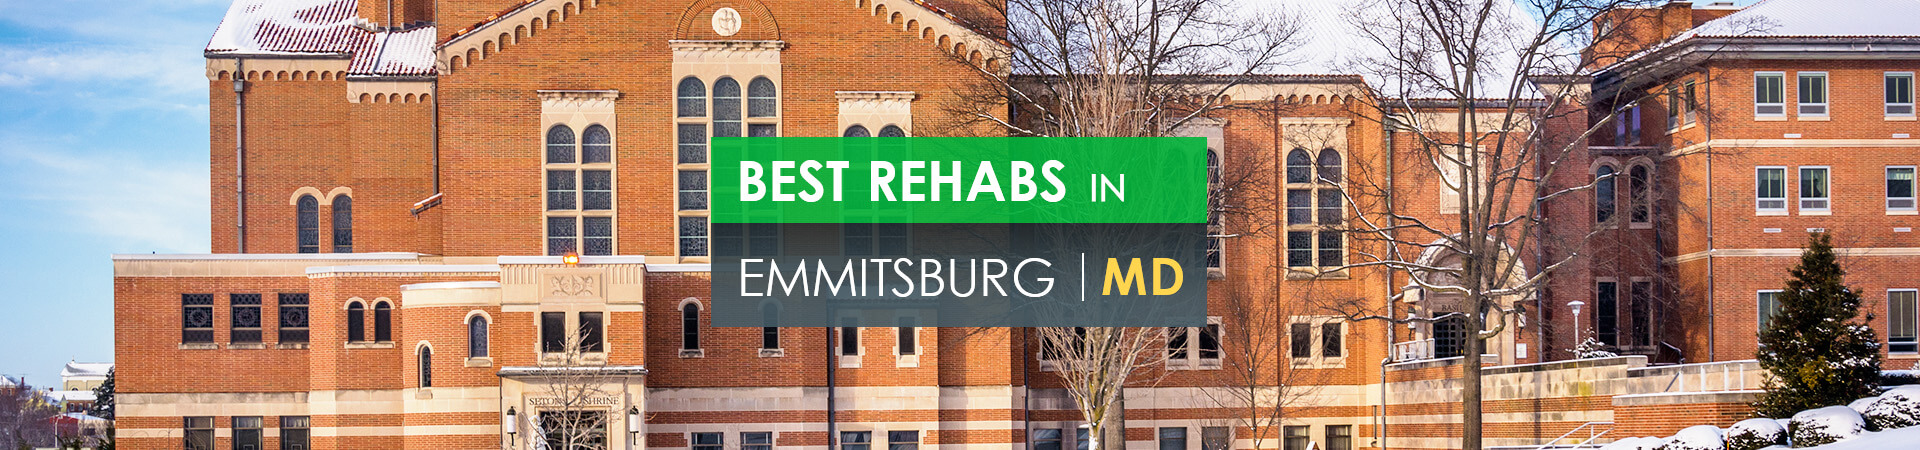 Best rehabs in Emmitsburg, MD